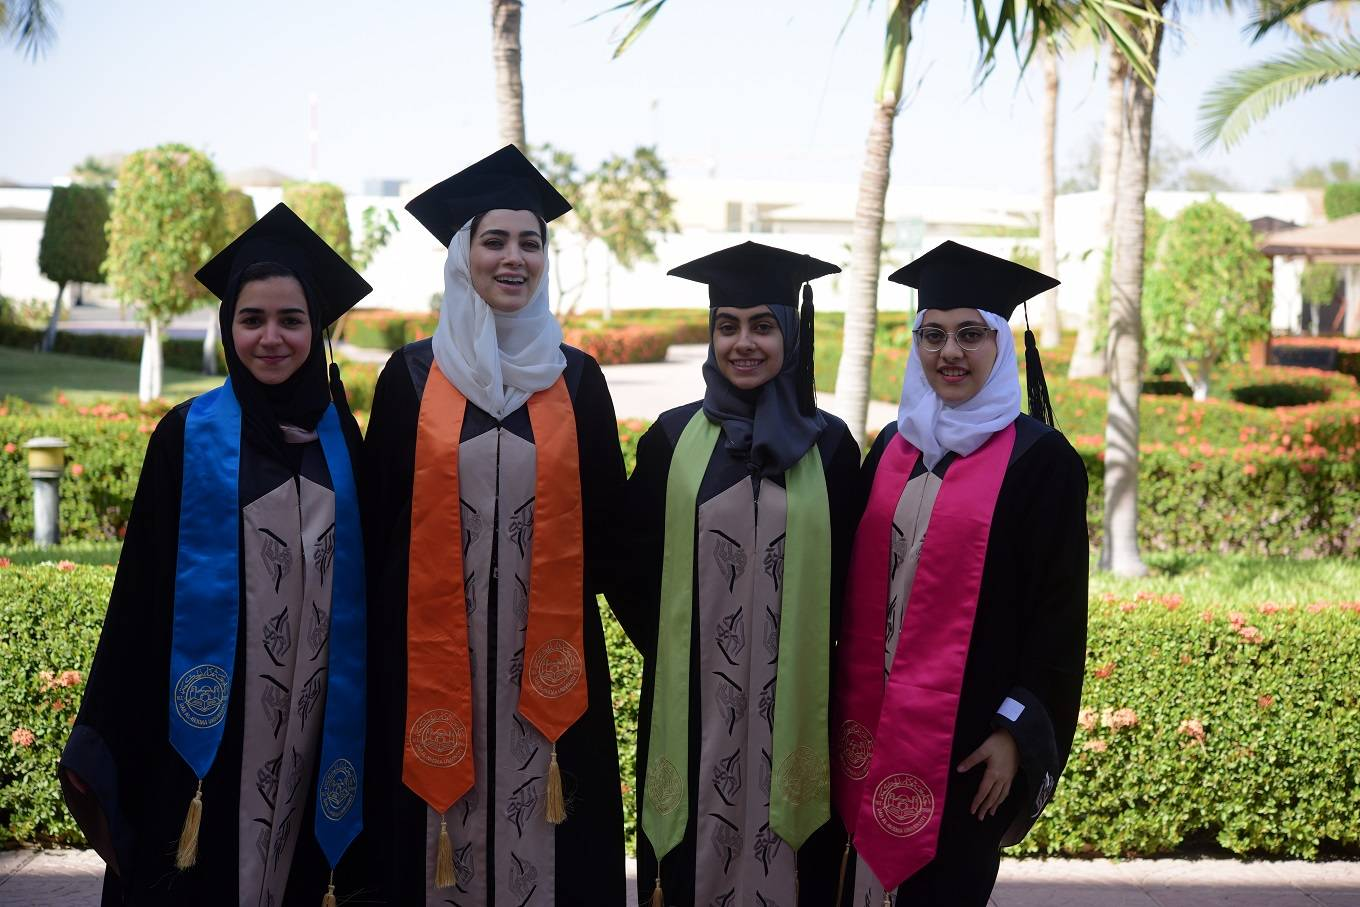 As many 467 undergraduate and postgraduate students graduated from various departments of Dar Al-Hekma University during the academic year 2018-19.